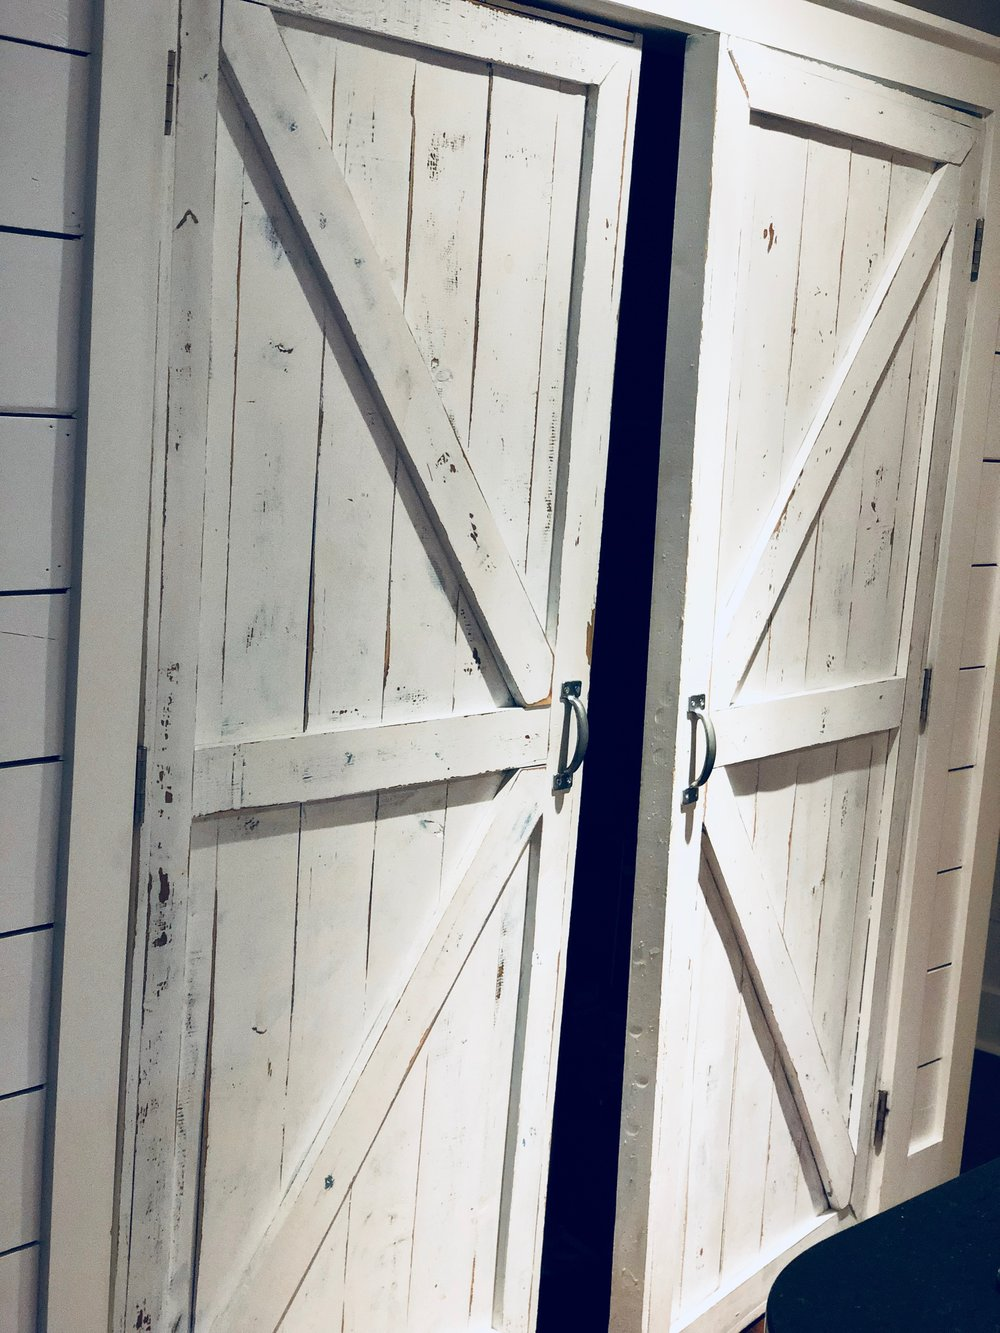 I just adore my pantry barn doors because Brian built them from scratch! They are a focal point of our kitchen and tons of hard work went into making them. They're a true labor of love.